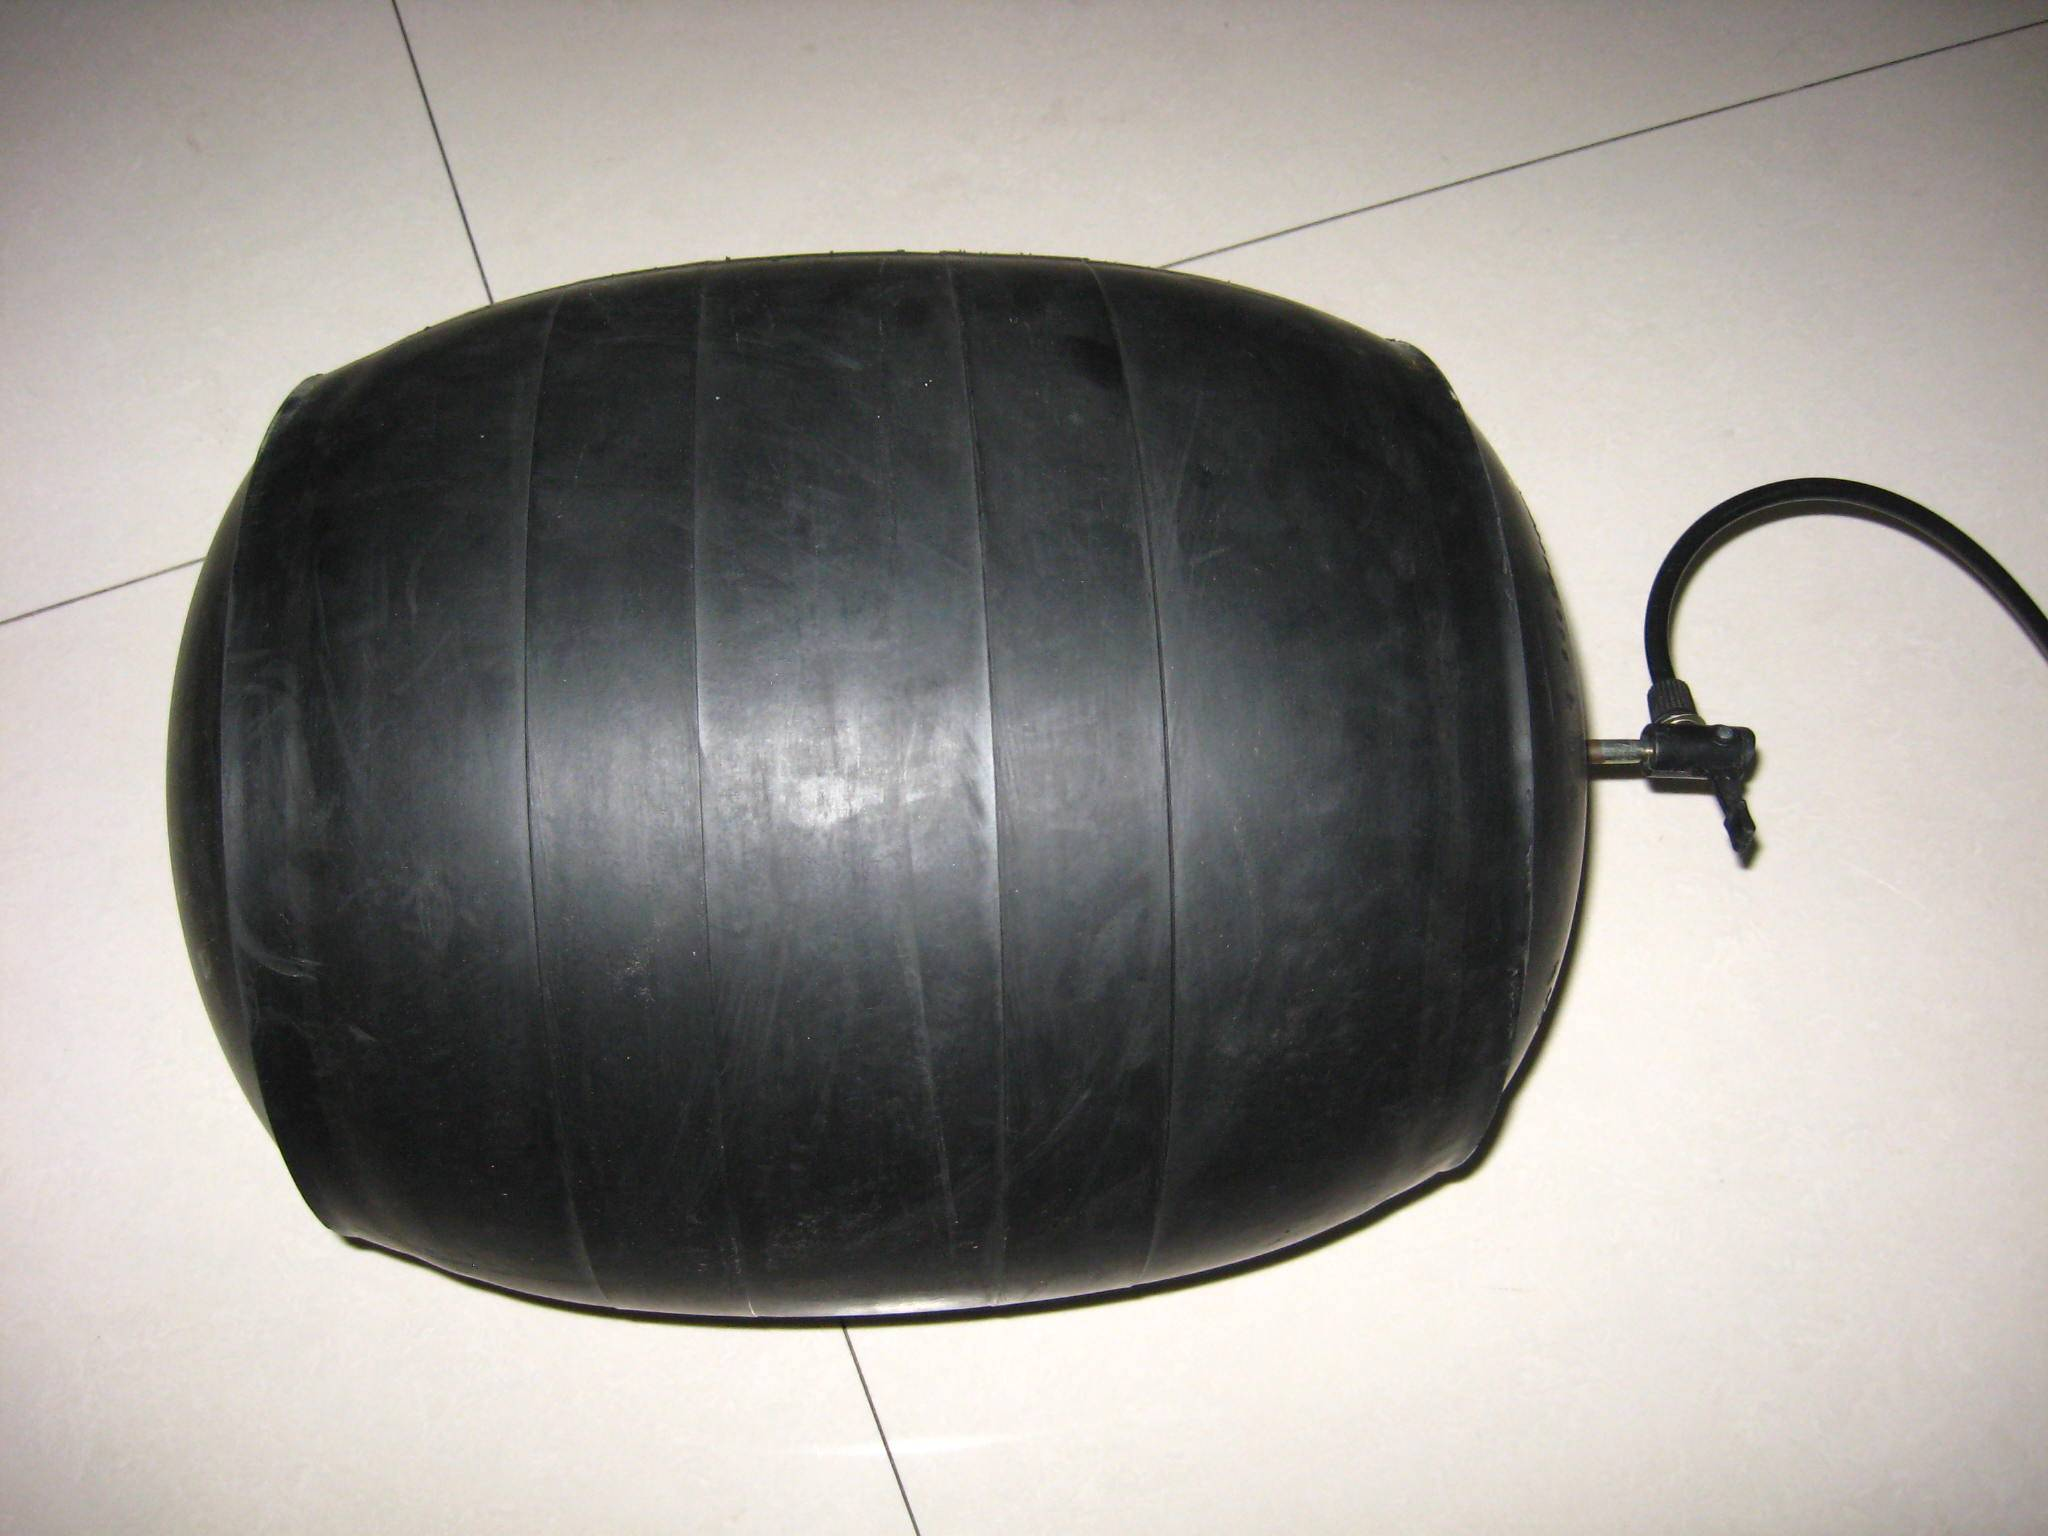 The best cost performance of rubber pipe plug